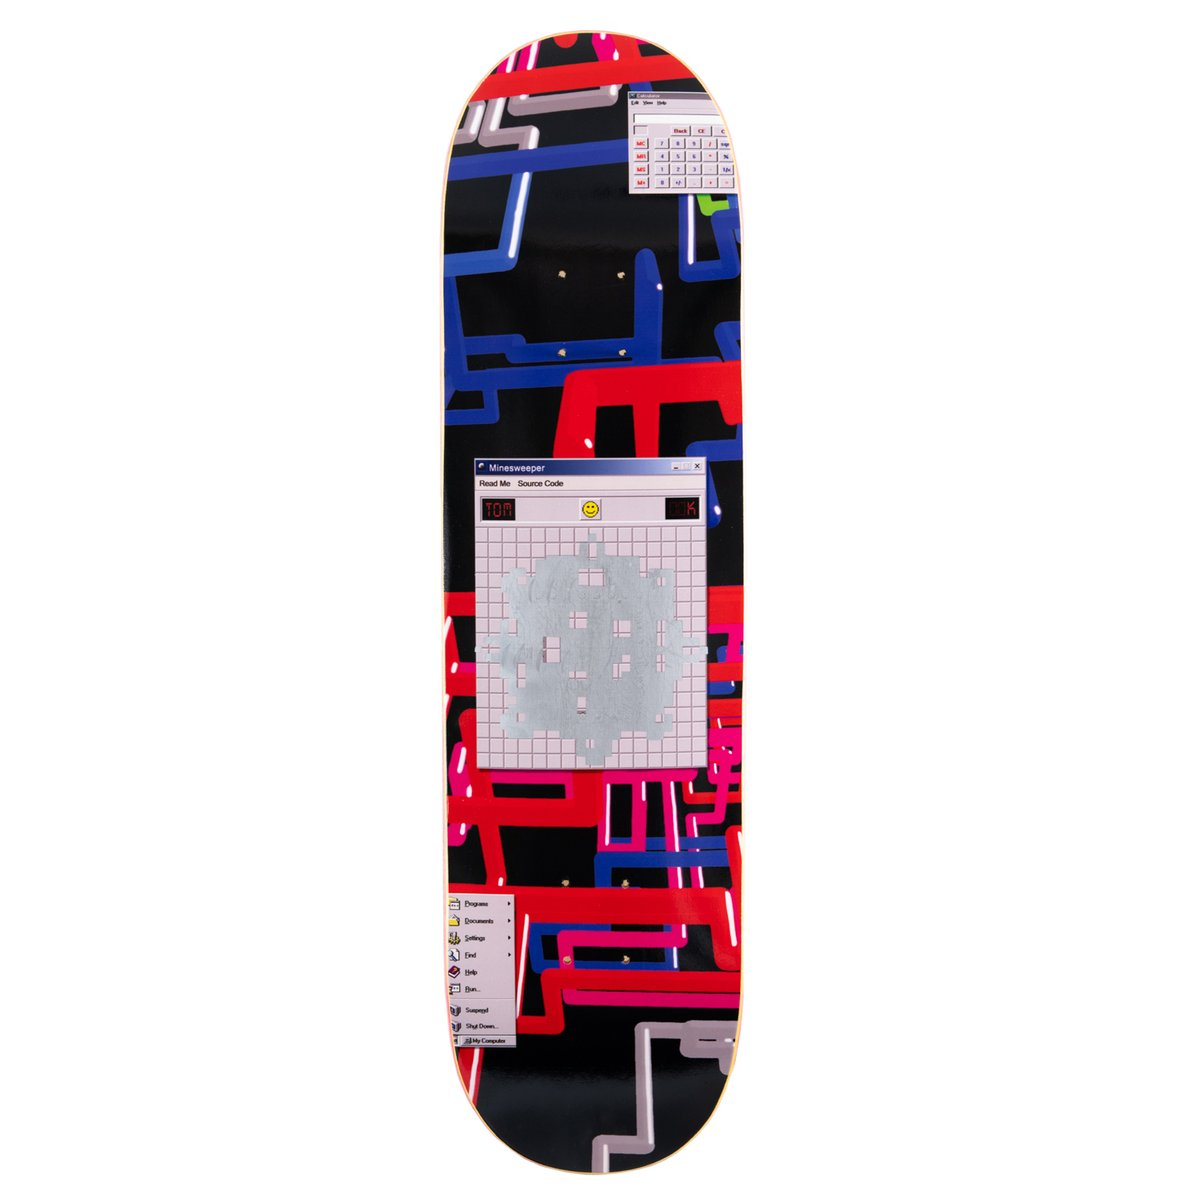 WKND Tom K Minesweeper Skateboard Deck - 8.0/ 8.25 / 8.38